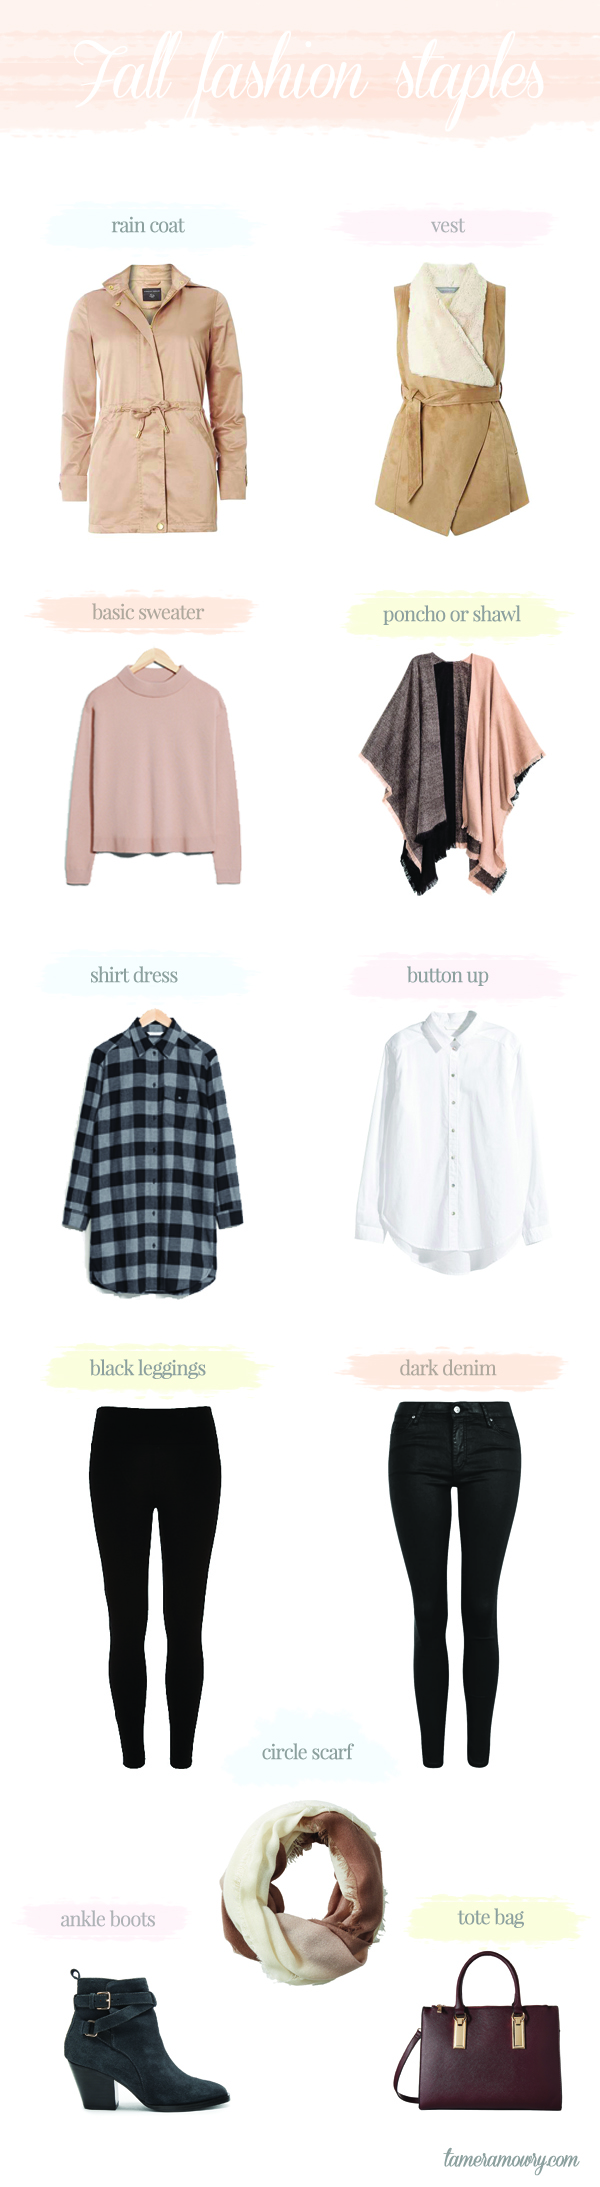 Fall Fashion Staples - Tamera Mowry fall must haves